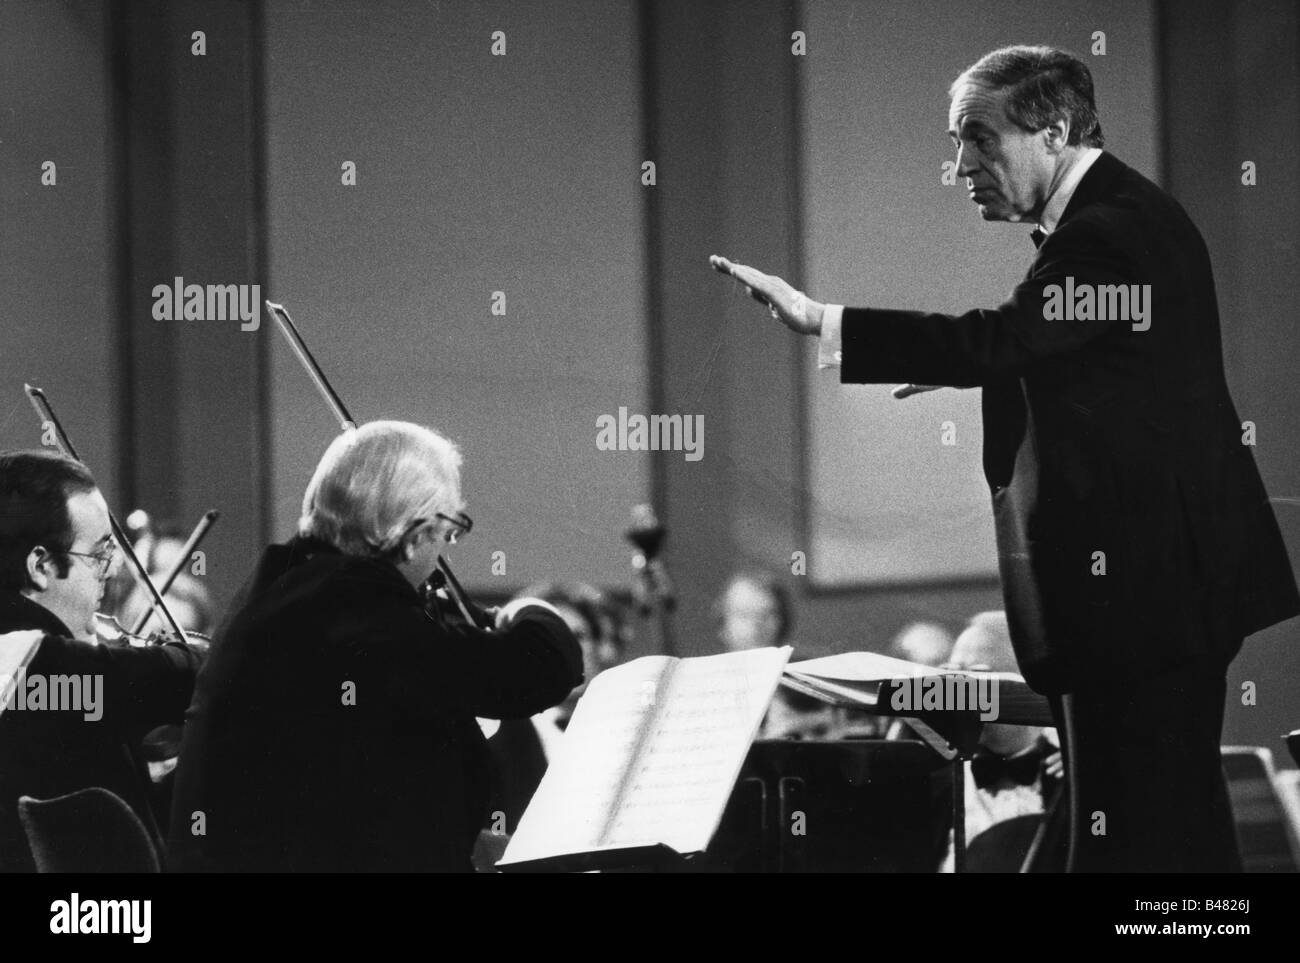 Boulez, Pierre, 25.3.1925 - 5.1.2016, French composer and conductor, during a concert, conducting, 1990s, Additional - Stock Image